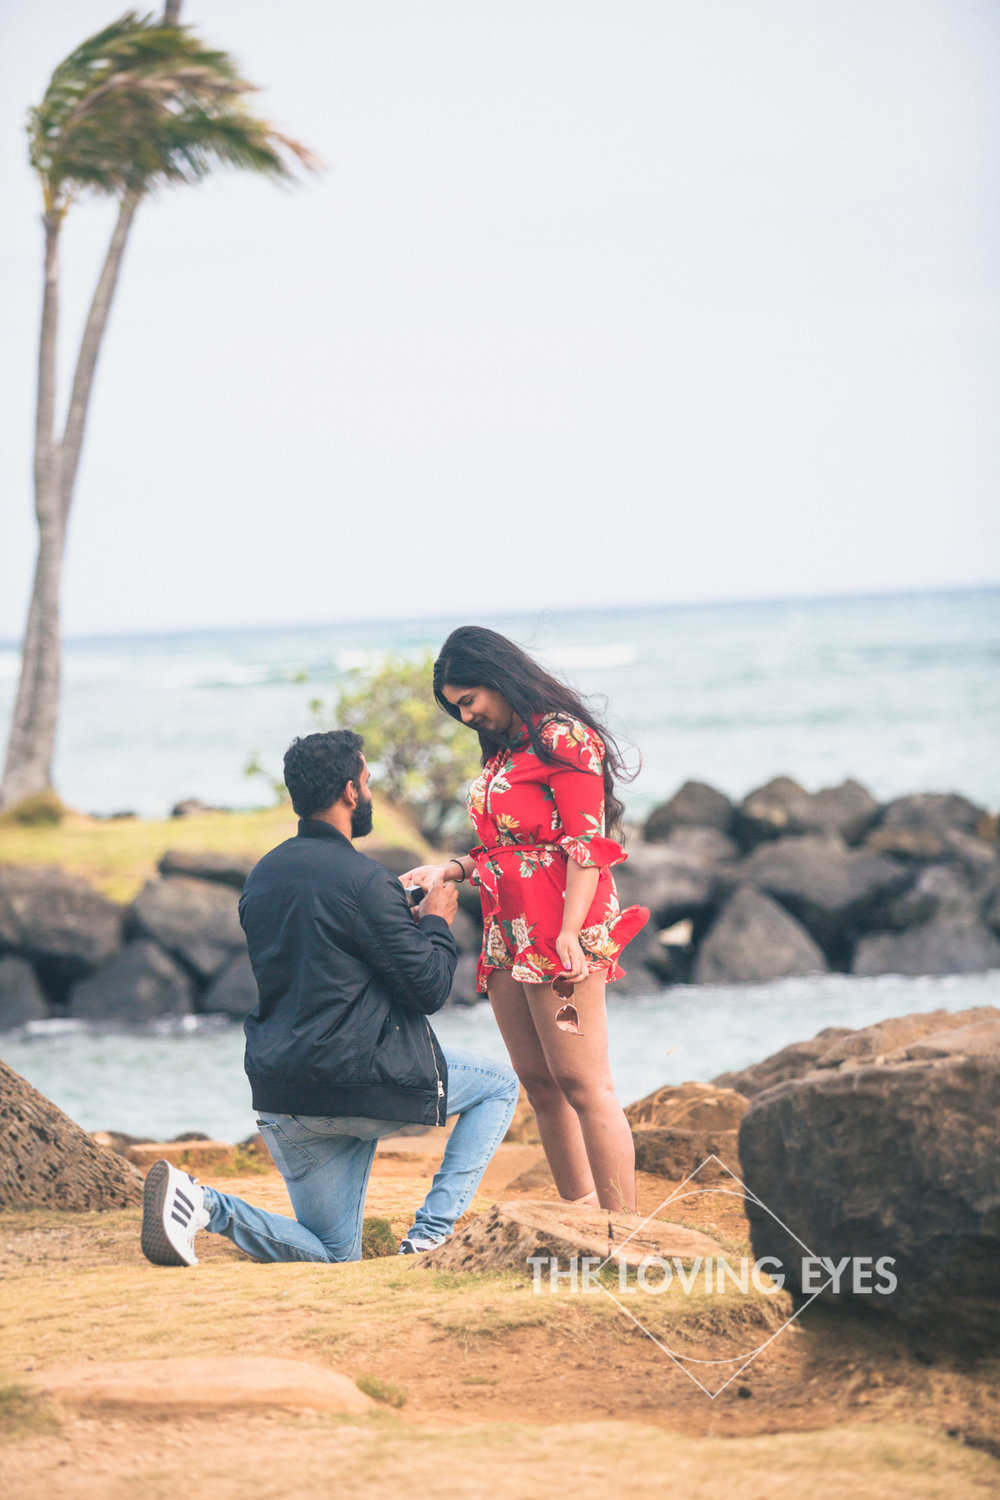 Proposal photography at Waialae Beach Park while on vacation in Hawaii